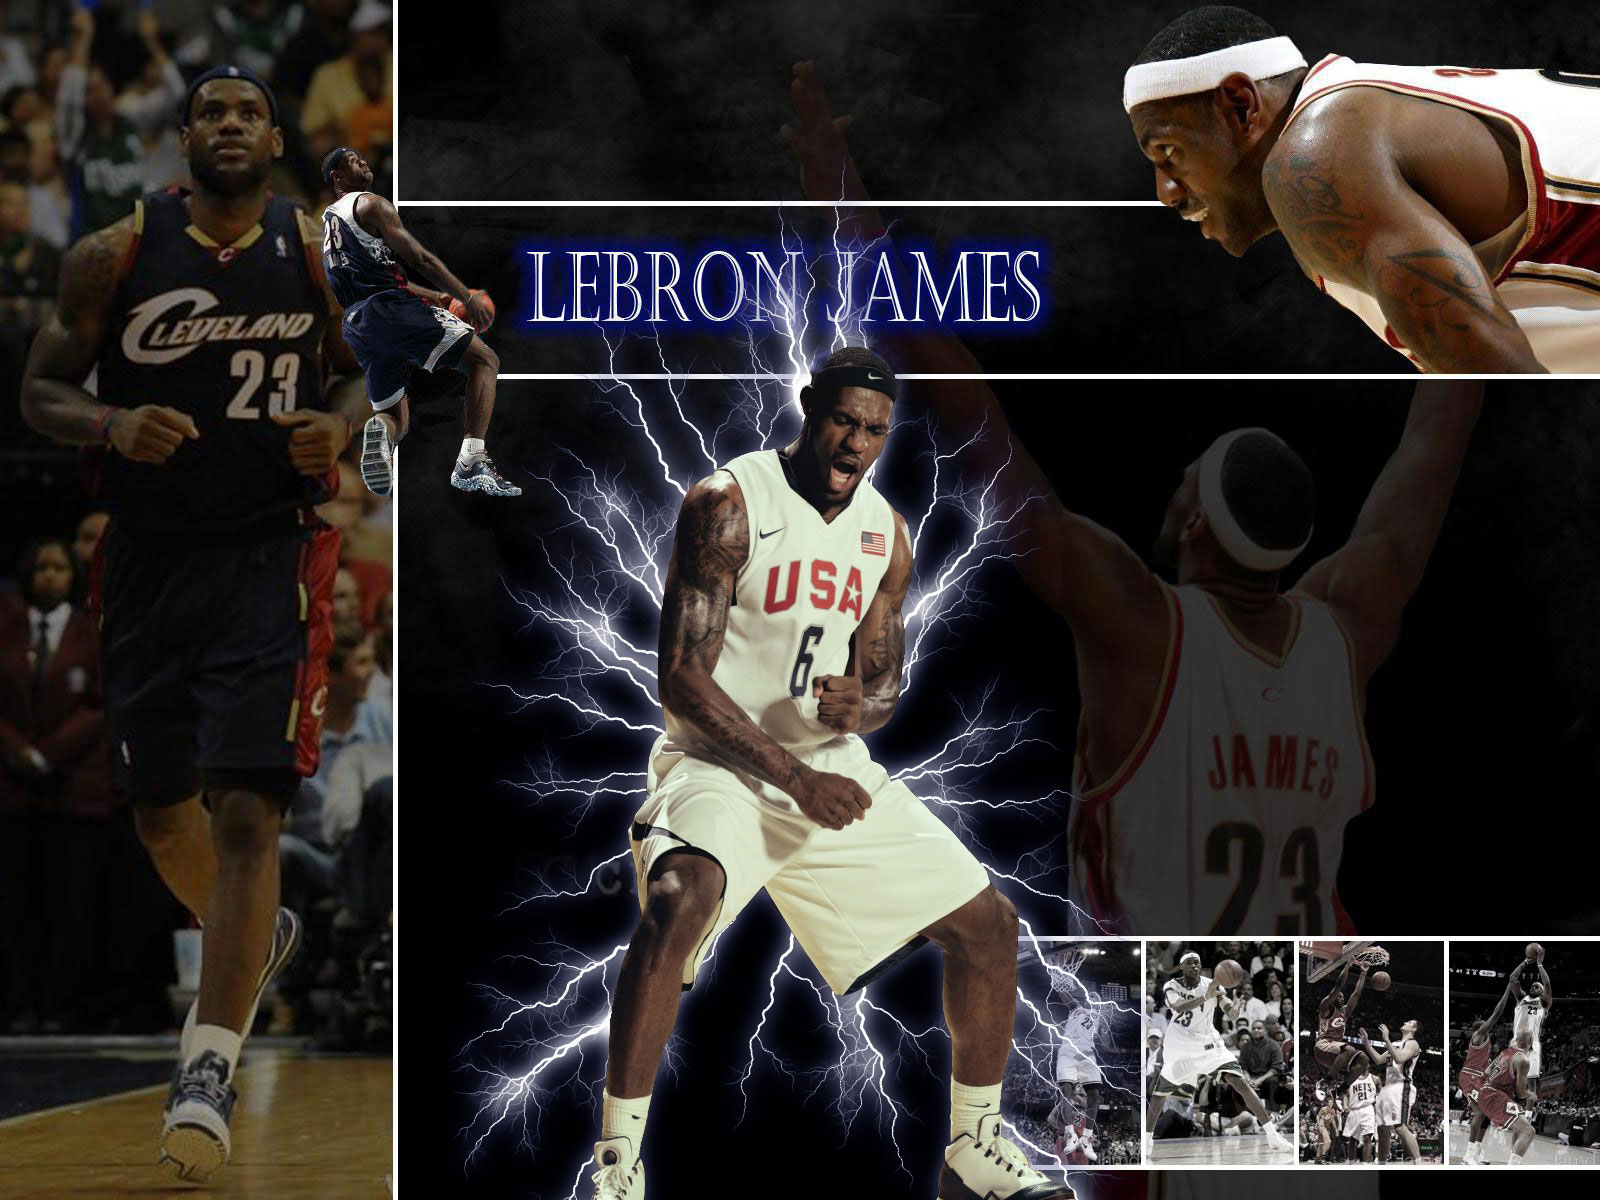 lebron james usa wallpapers